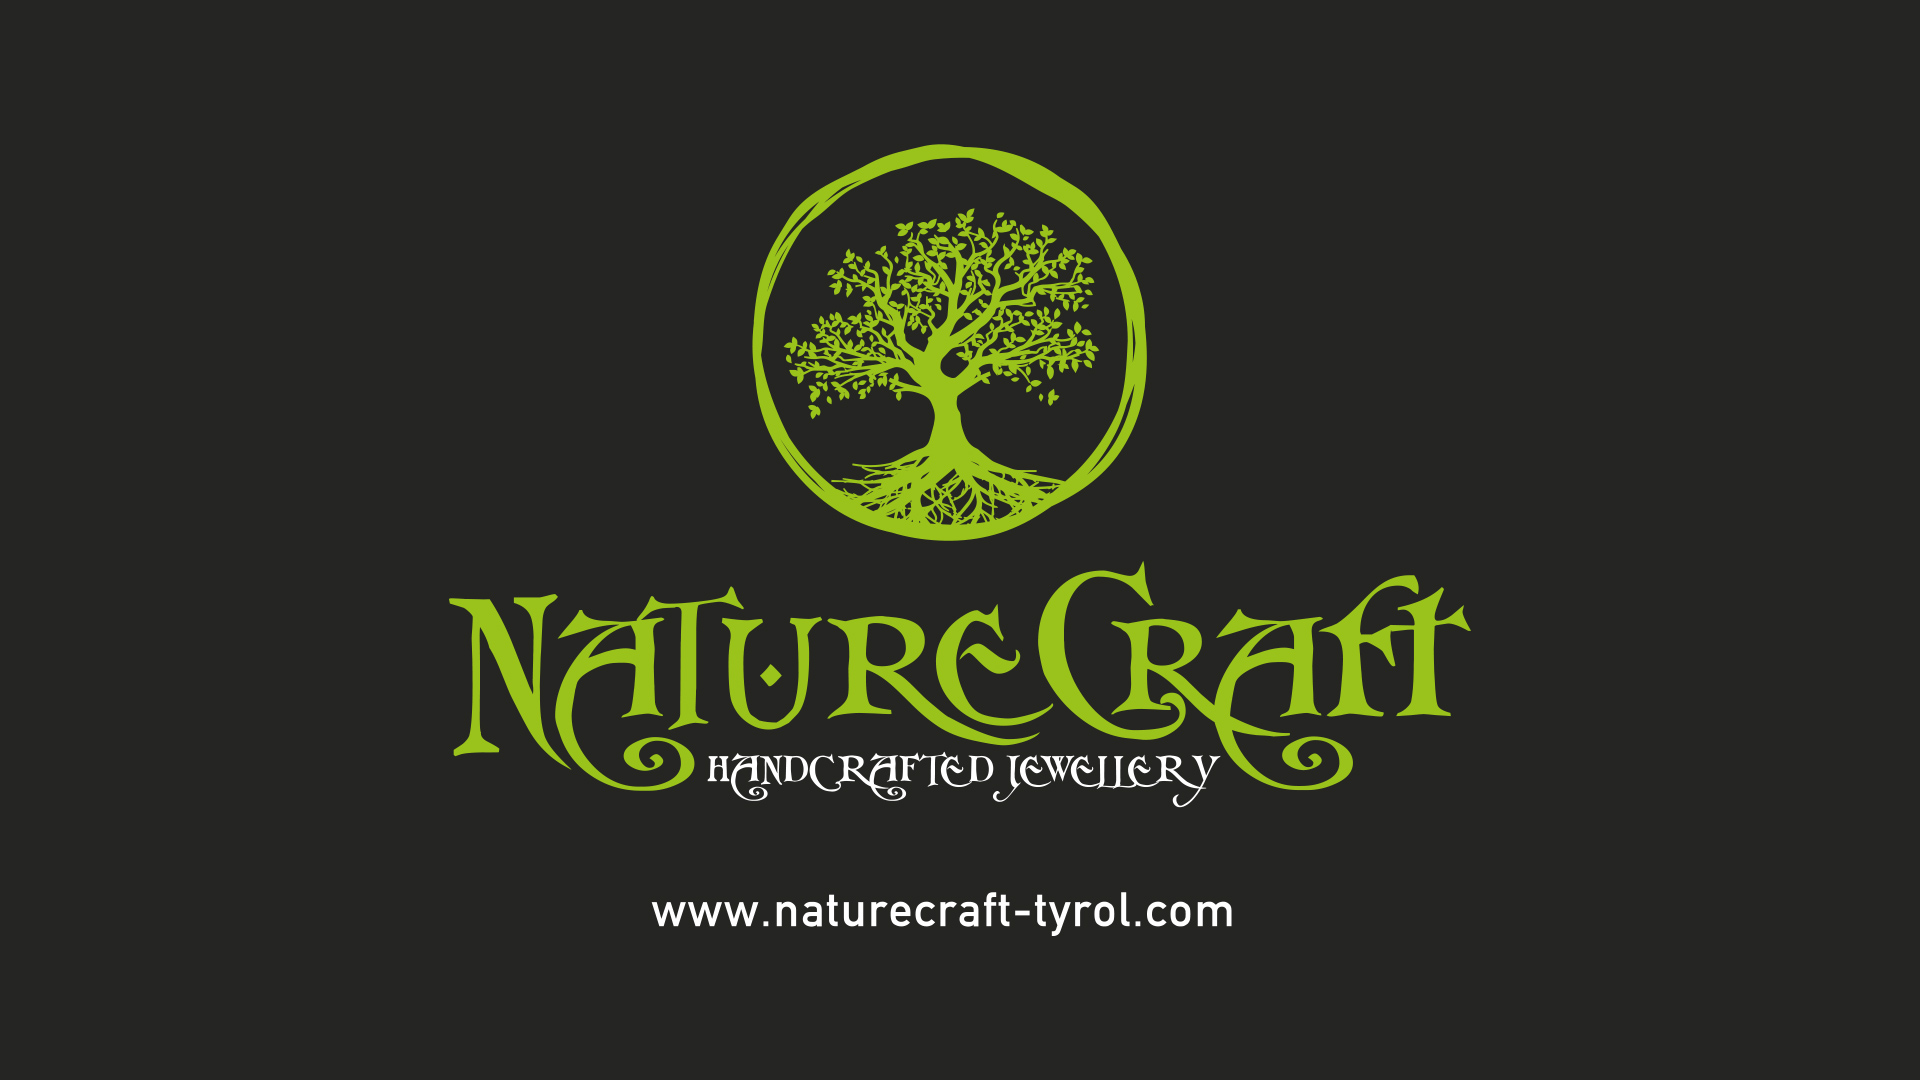 Naturecraft